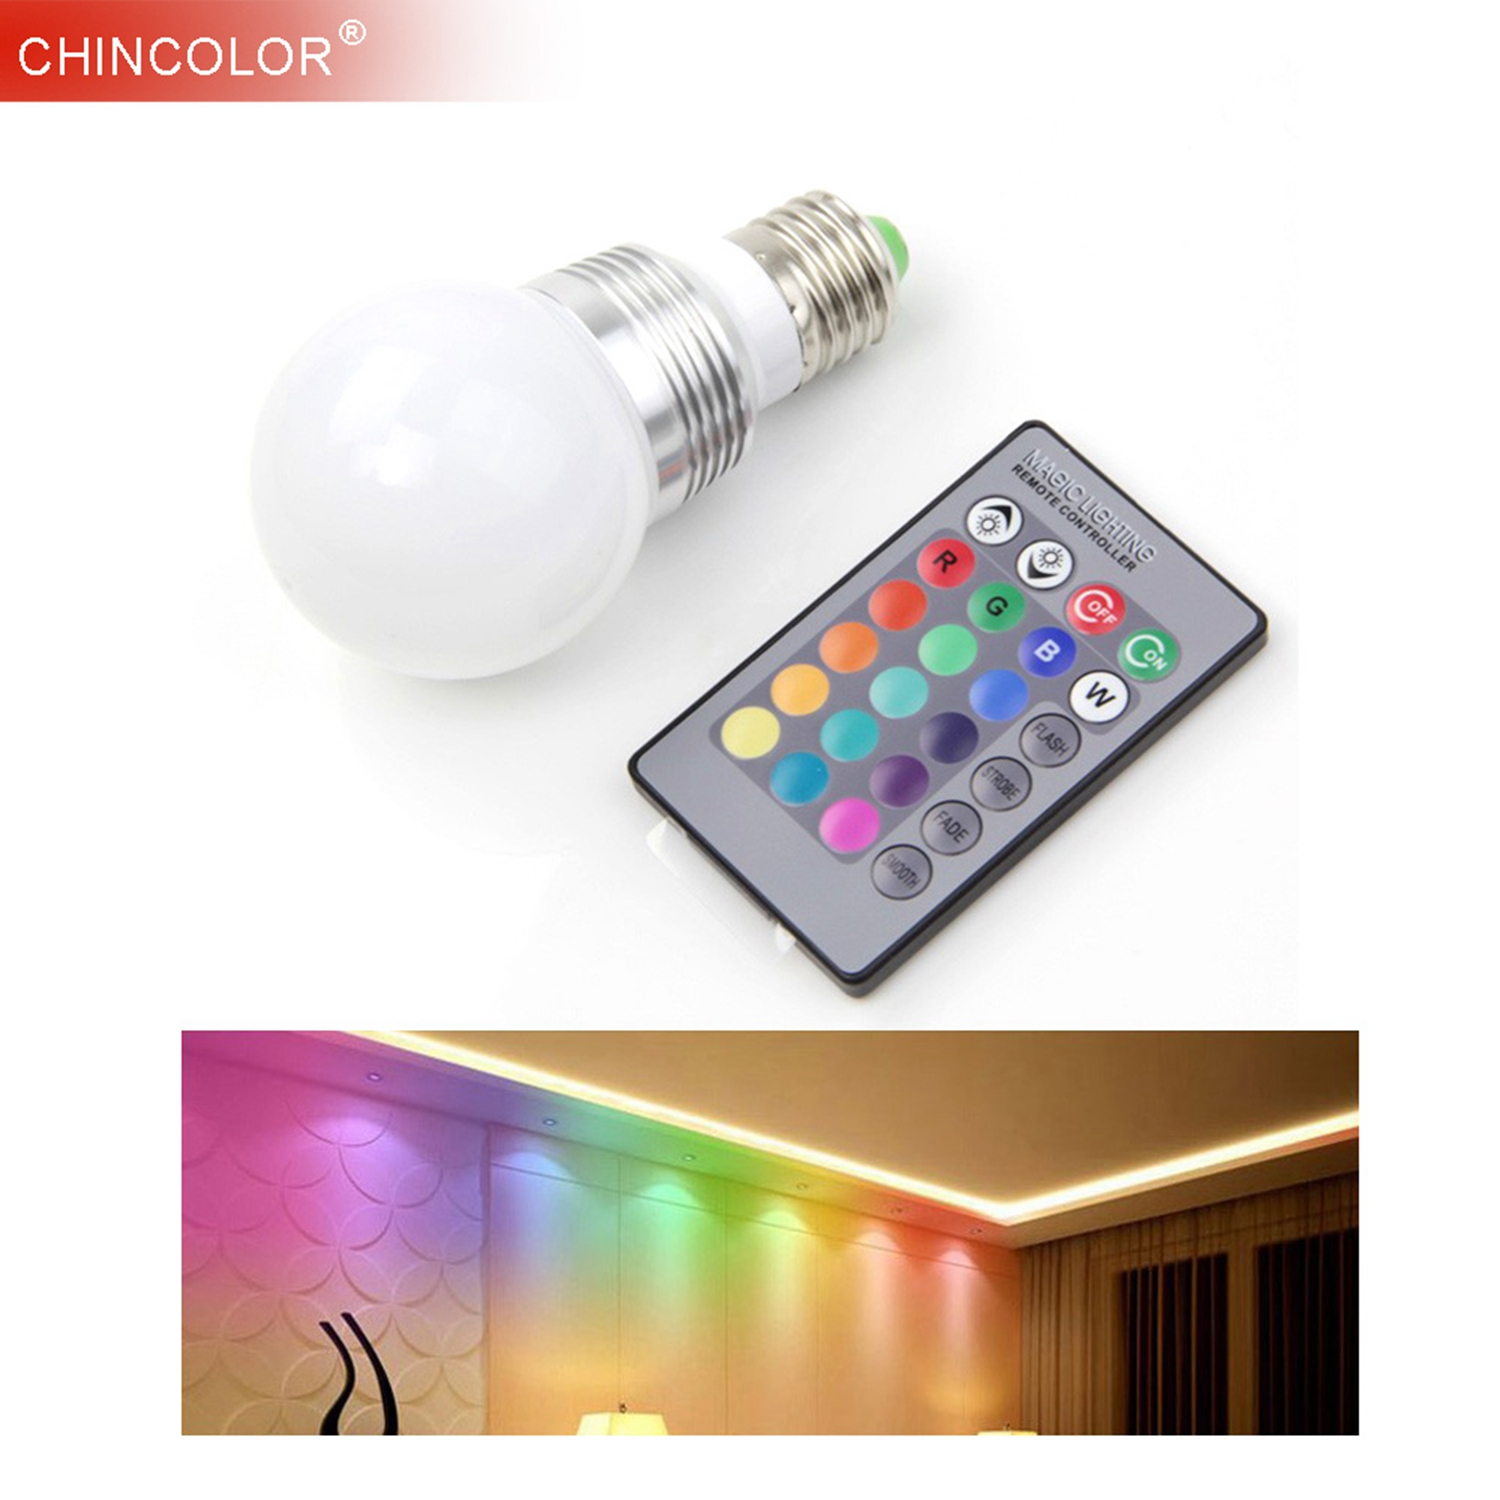 10w Led Bulb Rgb Lamp With Remote Control 16 Color 9w Ac110v 220v E27 E14 B22 Multiple Colour Led Lighting Fast Ship Jq Drip-Dry